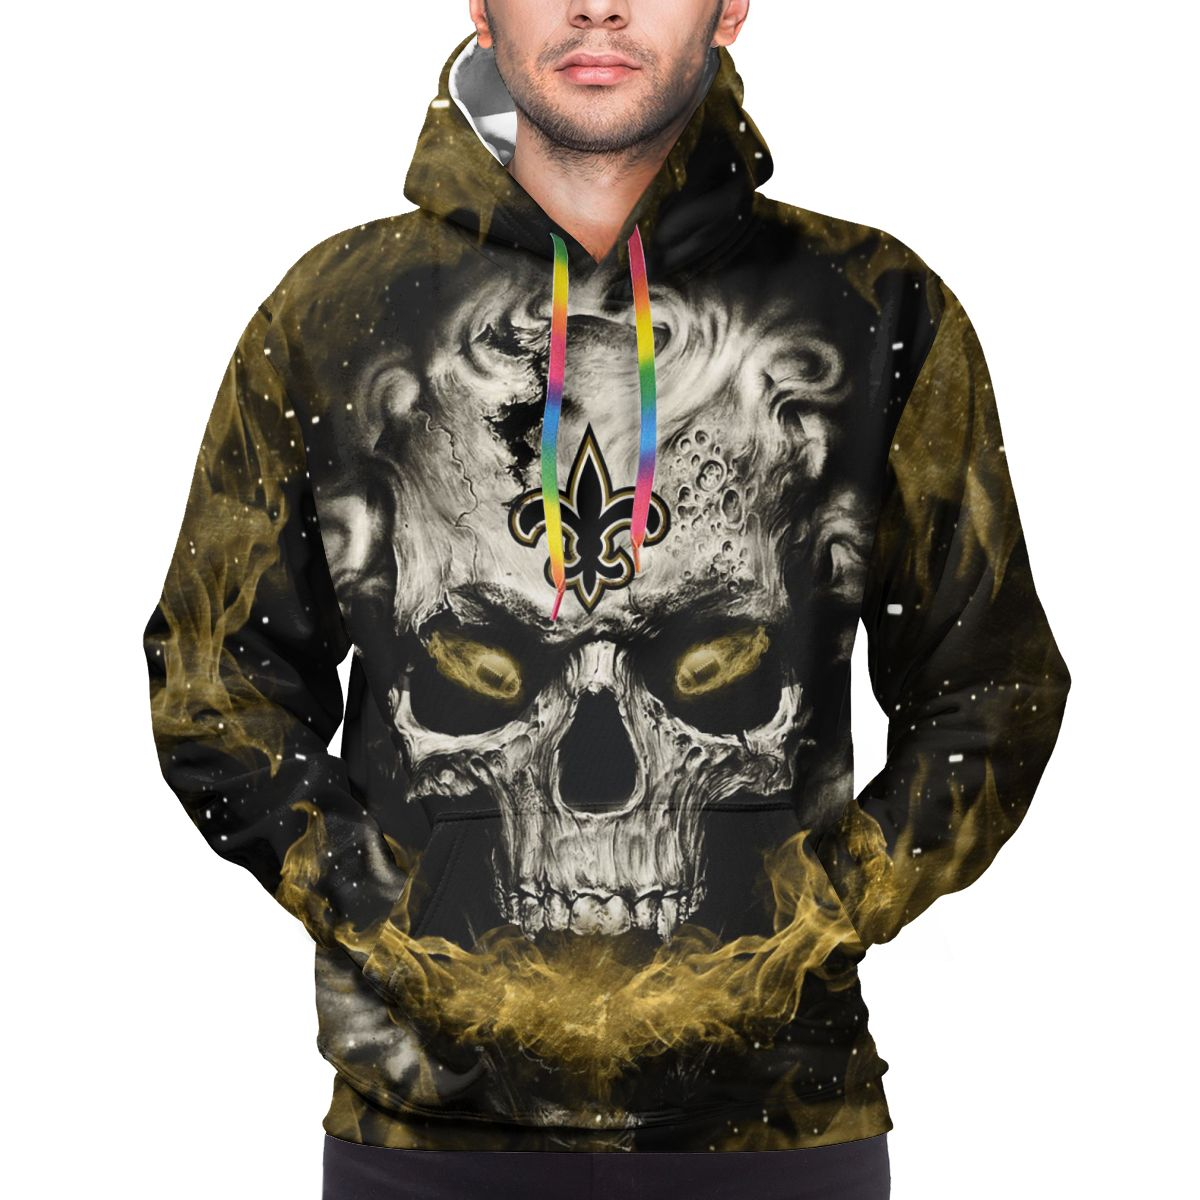 3D Skull Saints Logo Print Hoodies For Men Pullover Sweatshirt